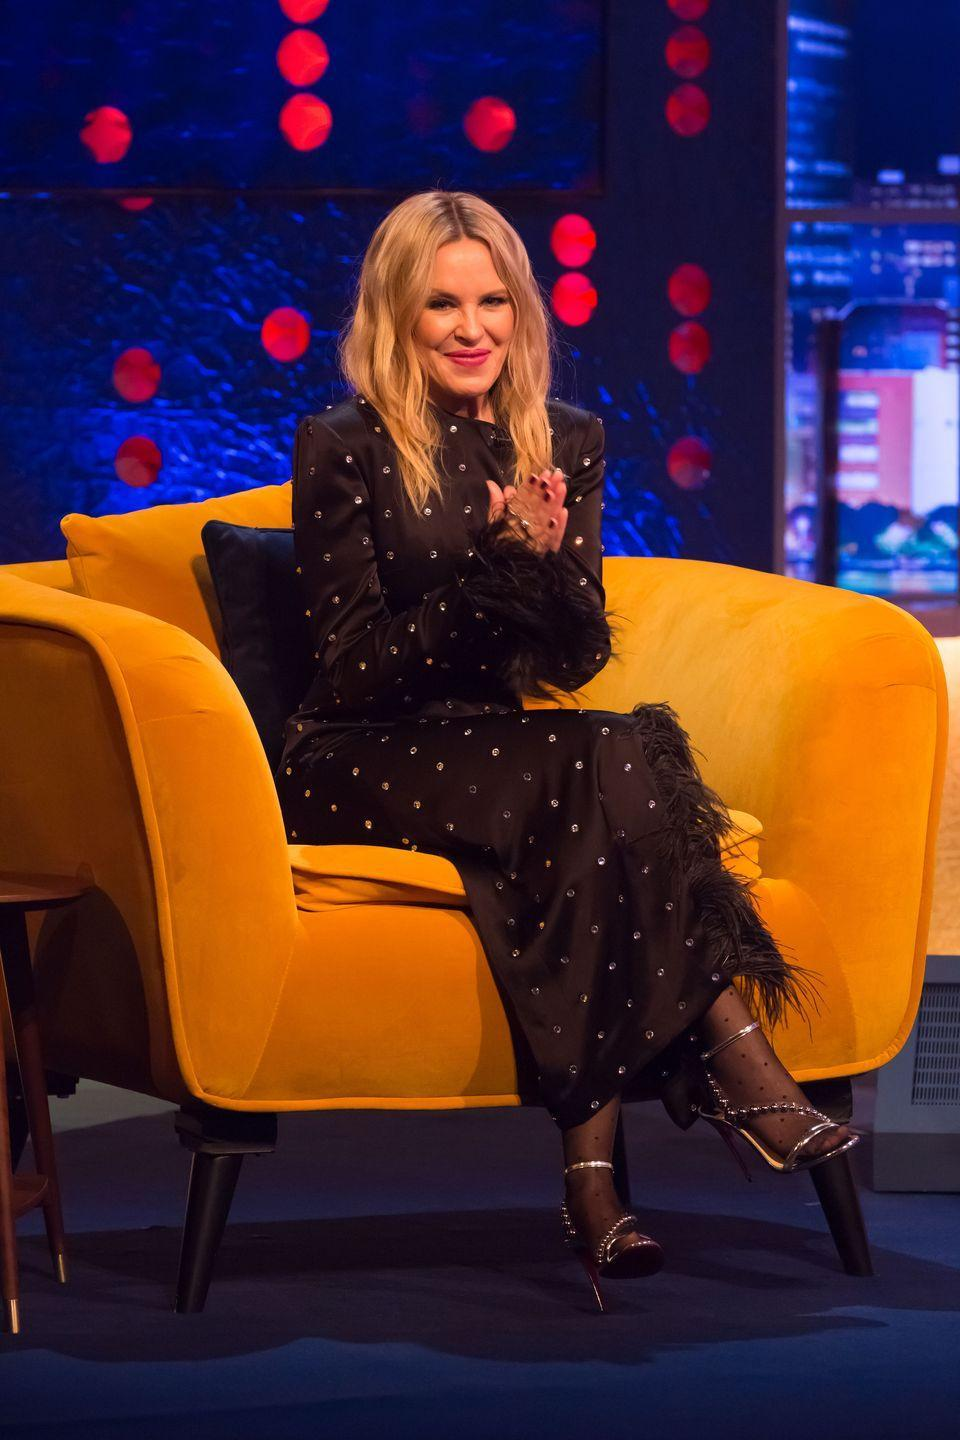 <p><strong>5 December</strong> Kylie Minogue wore a feather-trimmed David Koma dress and strappy sandals for an appearance on The Jonathan Ross Show.</p>